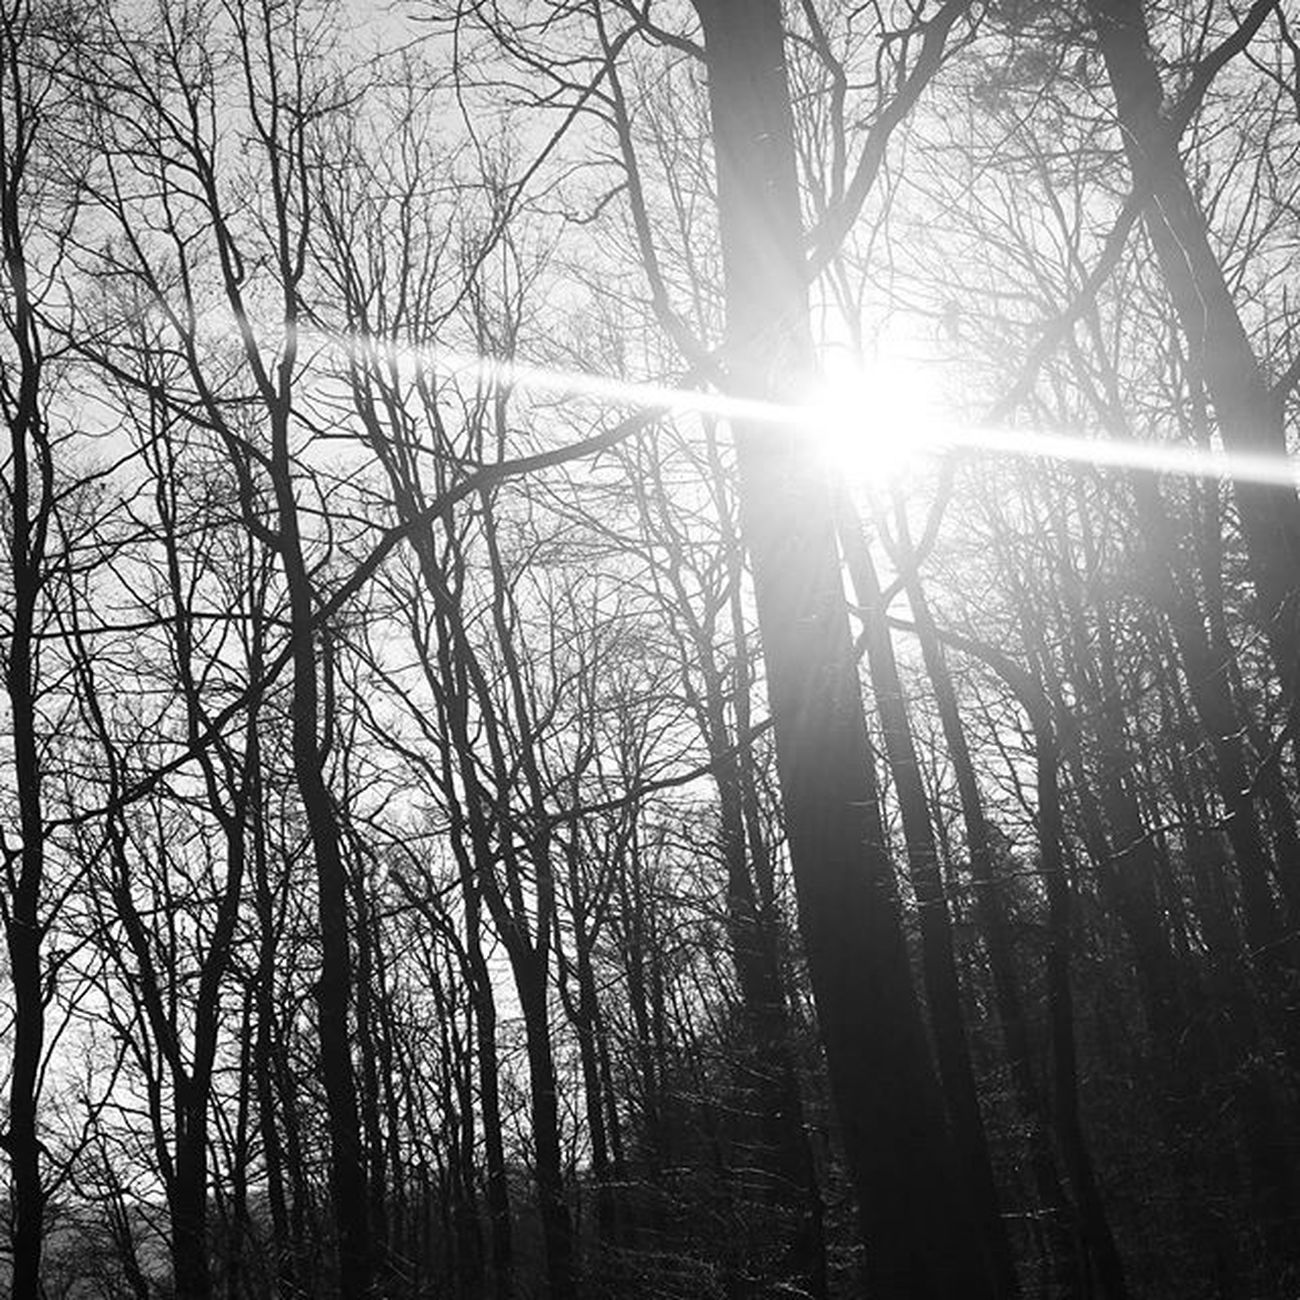 Outdoors Palatinateforest Pfälzerwald Pfalz Beautifulday Offtrack Nature Forest Hiking Artbynature Beautifulnature Winterisalmostover Bw Blackandwhite Baw Sun Sunbeam Sunlight